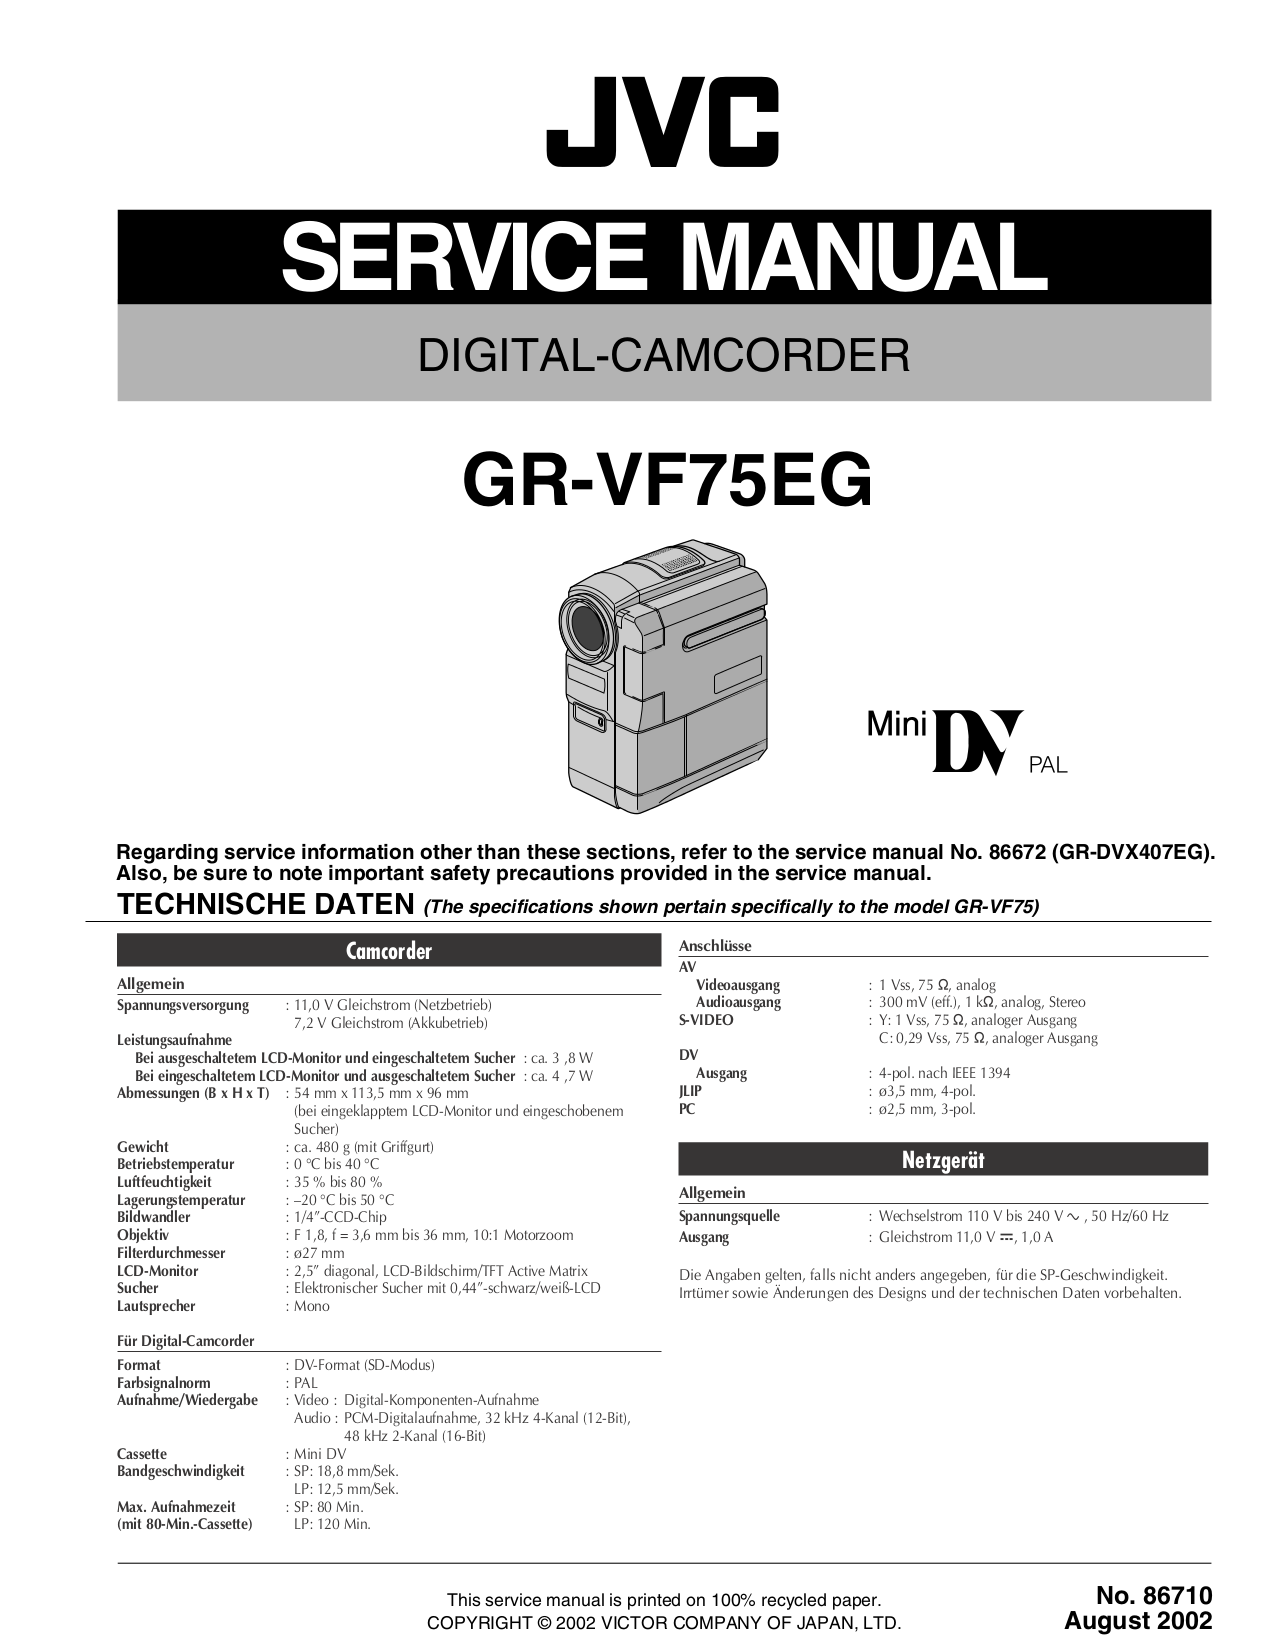 97 Jetta Wiring Diagrams Printer Friendly Jvc X80bt Manual Auto Electrical Diagram Download Free Pdf For Gr